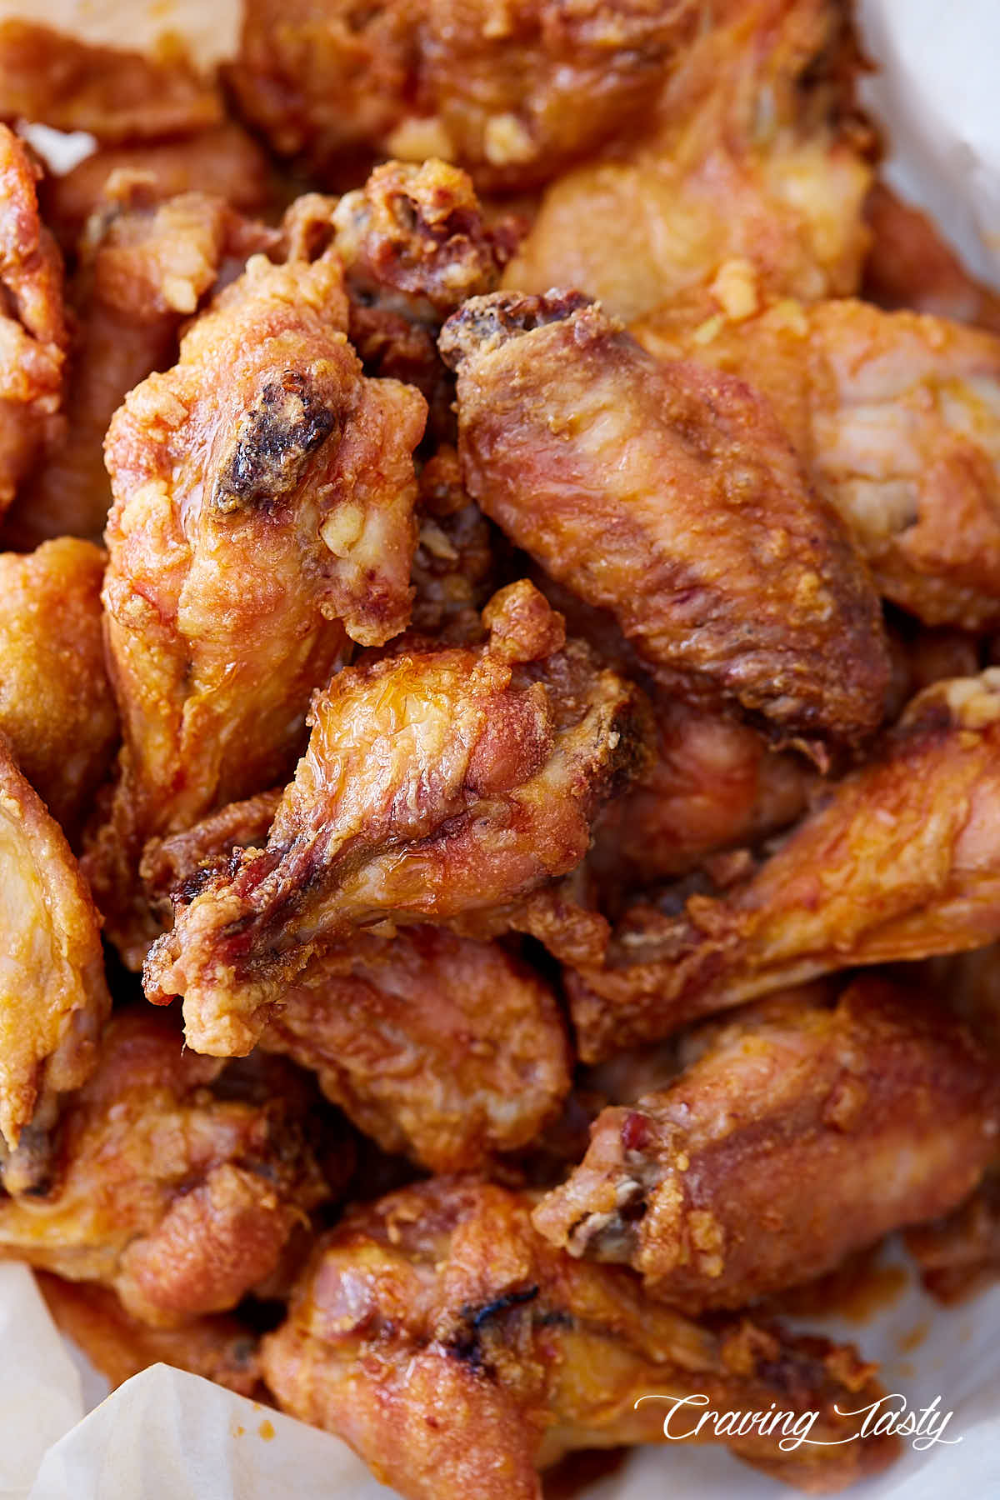 These Baked Chicken Wings Are Extra Crispy On The Outside And Very Juicy Inside They Are Like Deep Crispy Baked Chicken Wings Wing Recipes Baked Chicken Wings